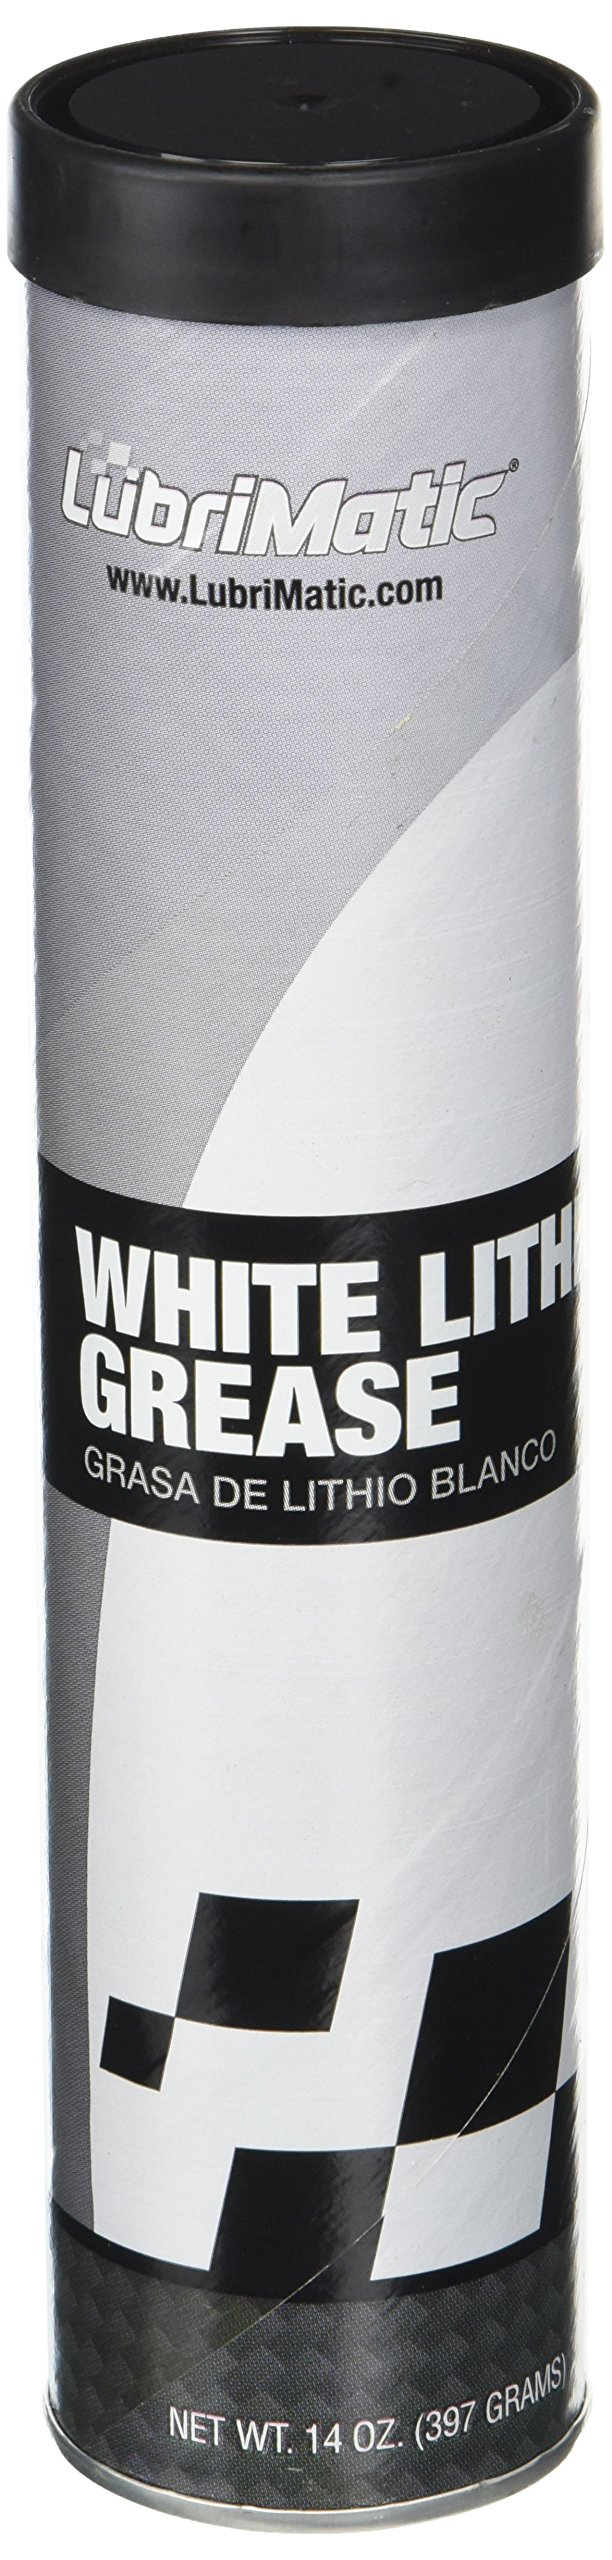 LubriMatic 11354 1 Pack White Lithium Grease, 14 Oz. Cartridge